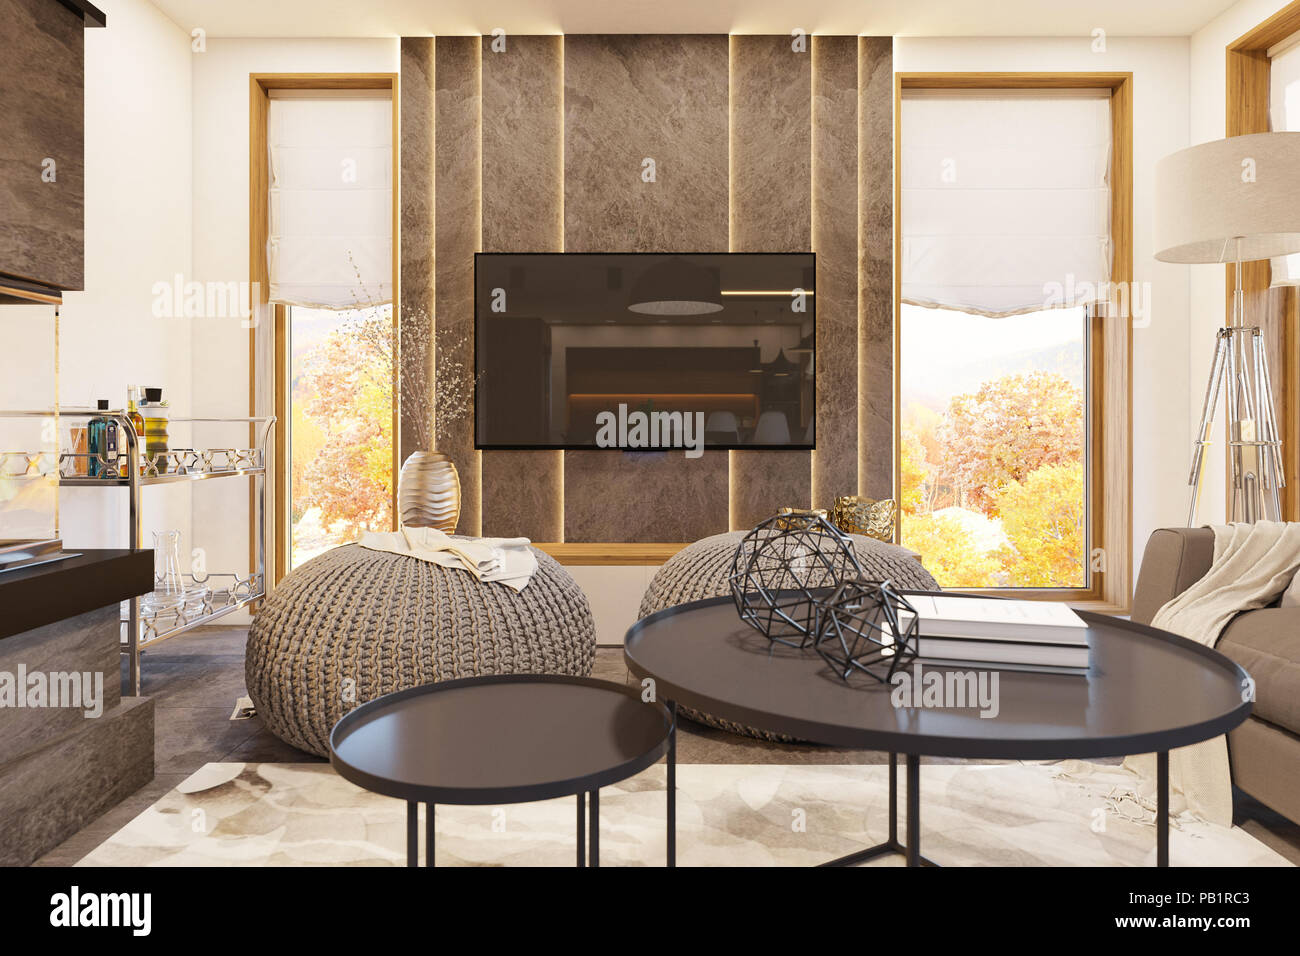 Living Room Interior Design With Fireplace Modern House In The